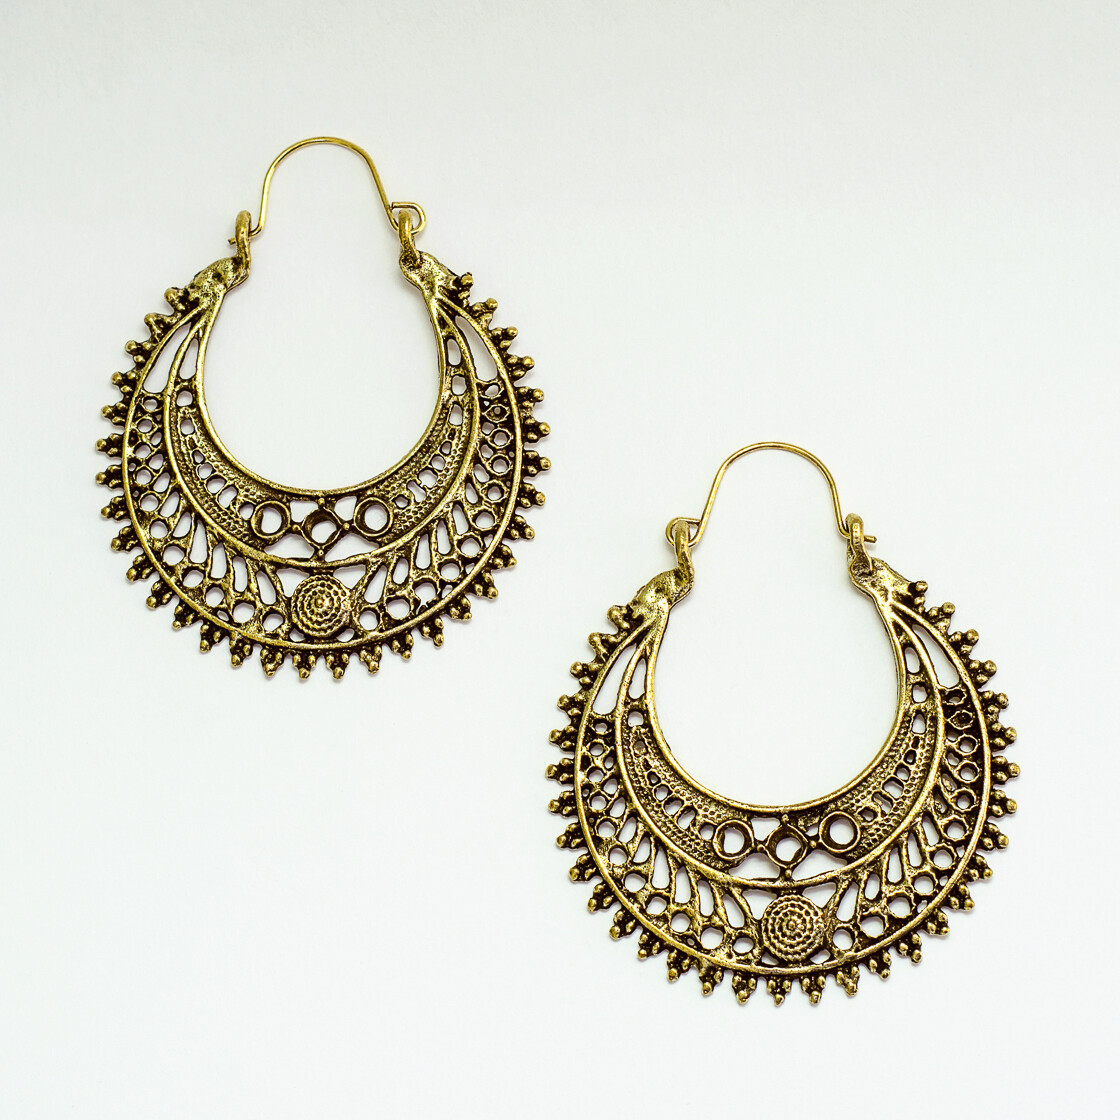 Antique Earrings 4 - BLACKDOLL ACCESSORIES